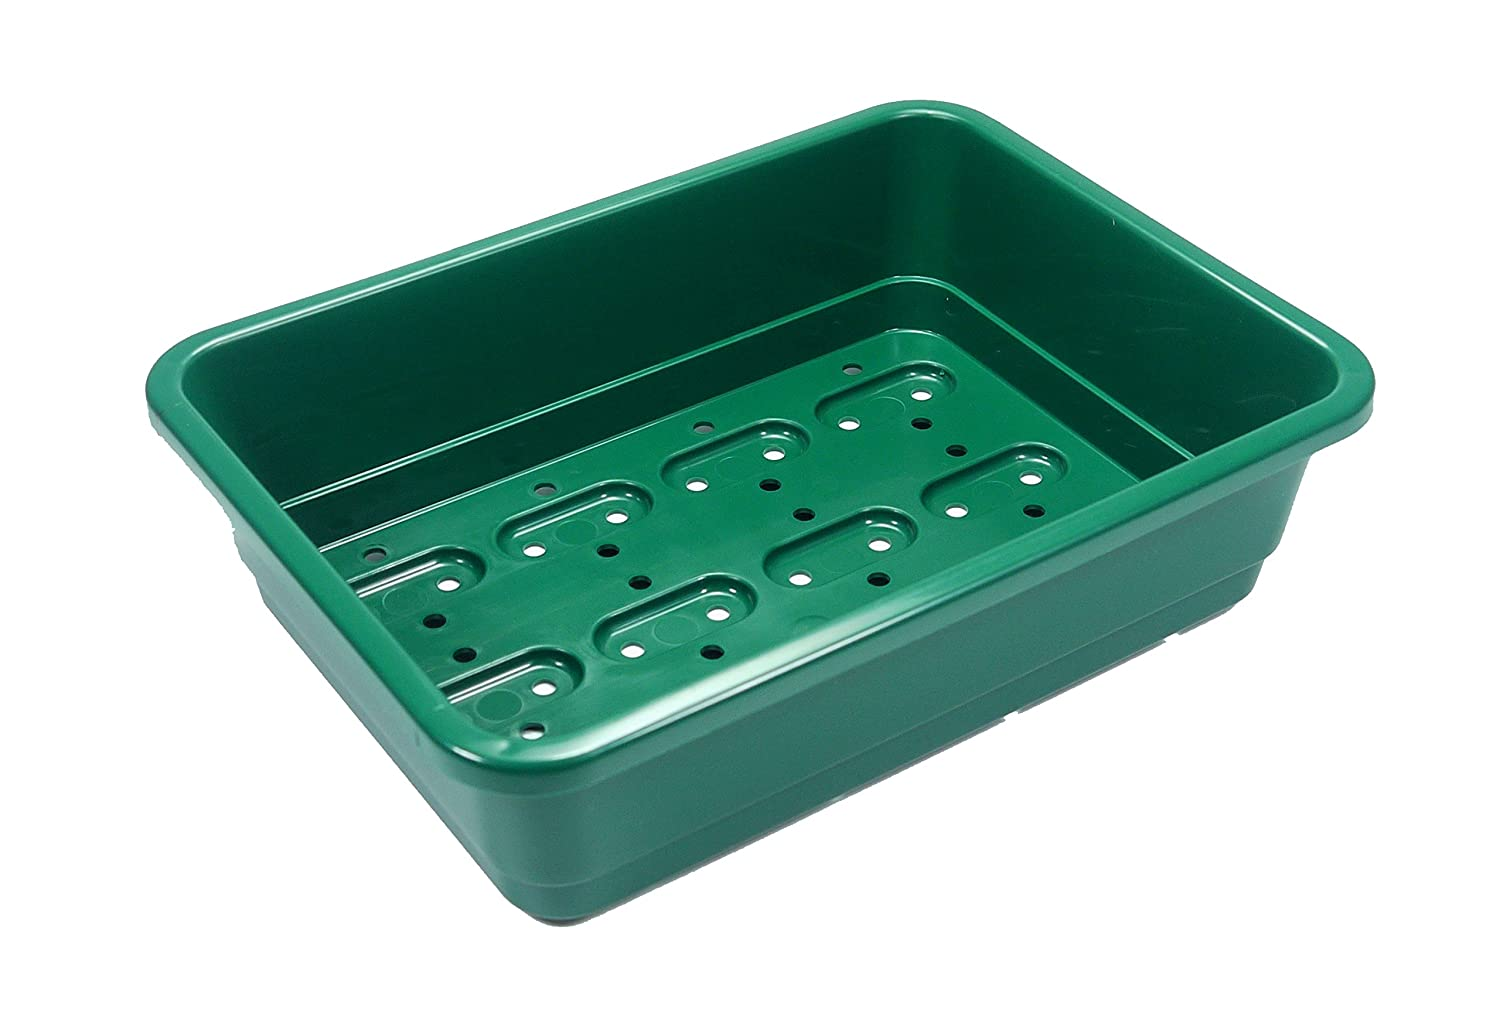 Britten & James Pack of 5 Professional Seed trays. Full size, BLACK heavy duty trays made from extra thick plastic with efficient drainage holes. As used by professional growers and garden centres.